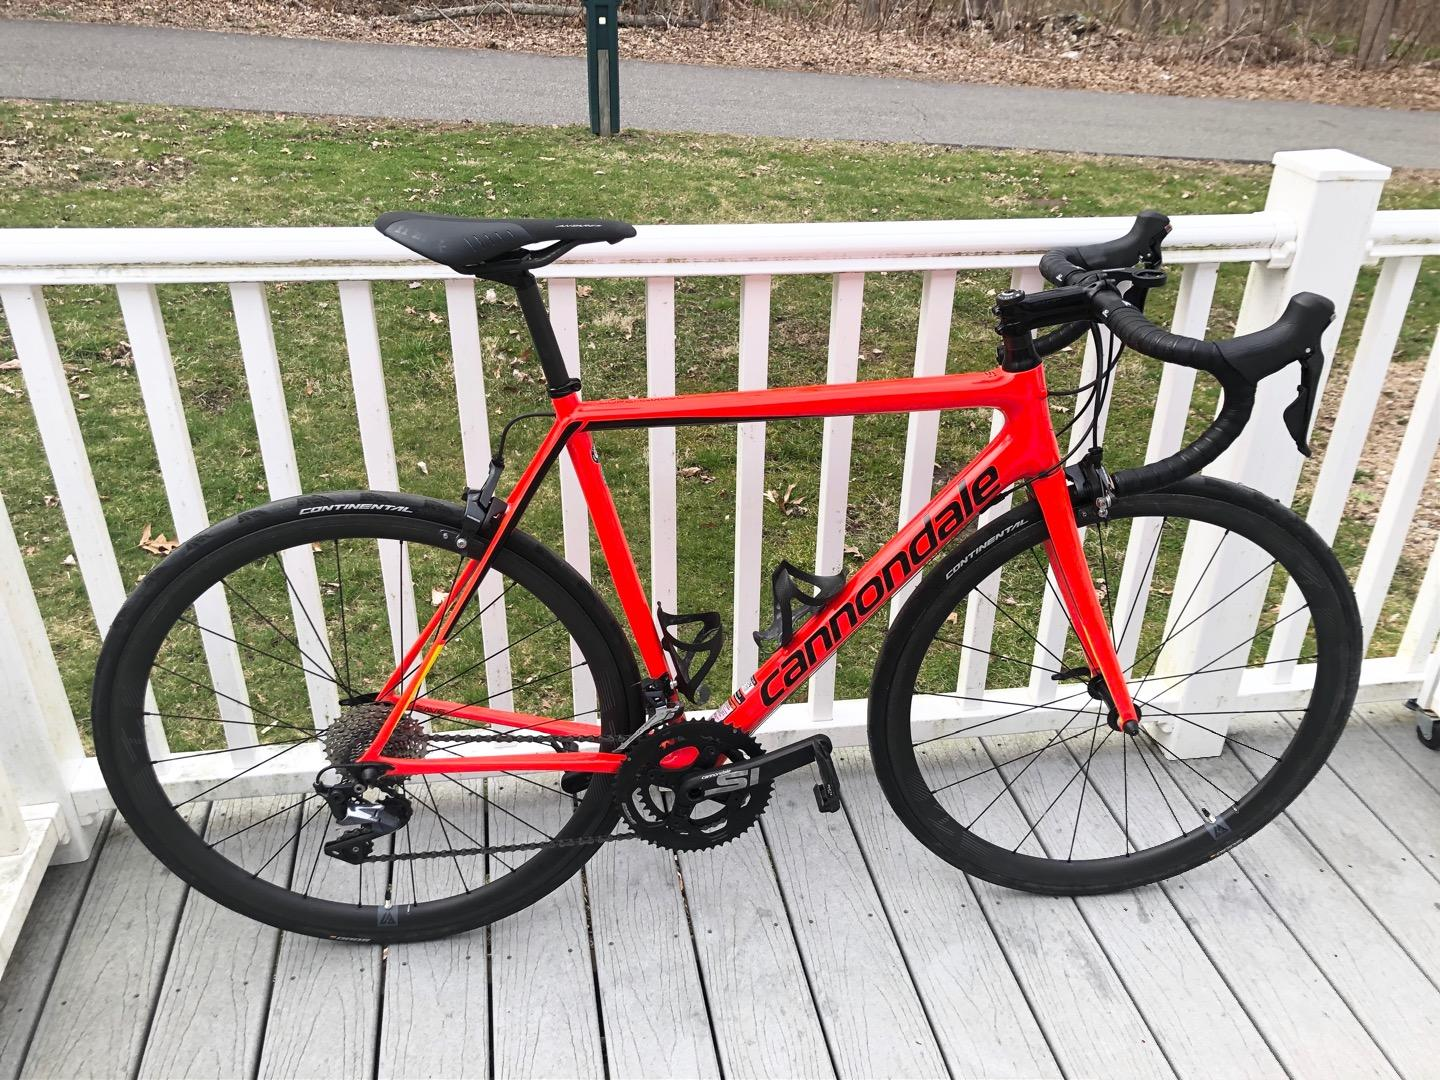 cannondale-supersix-road-bike-frame-red-built-with-light-bicycle-r35-carbon-wheels-